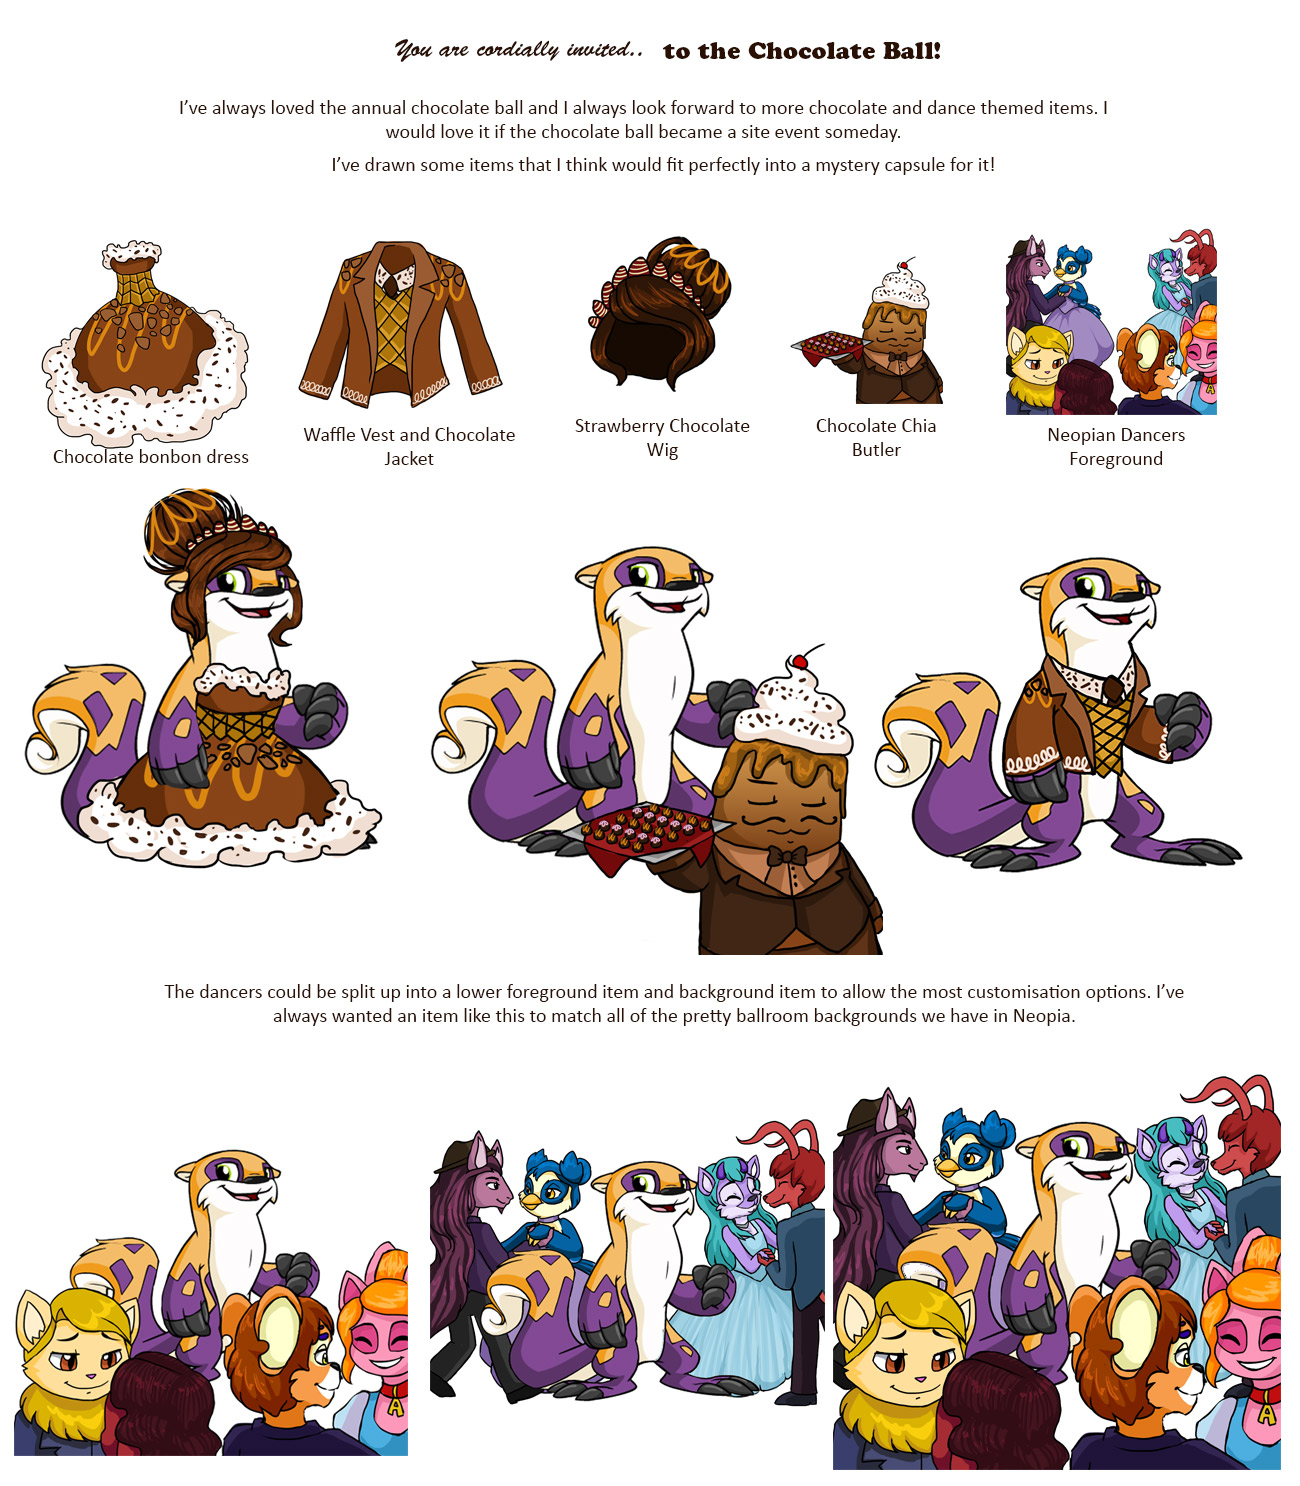 Ztiq got their homepage at Neopets.com   Neopets, Mythical monsters, Right  in the childhood